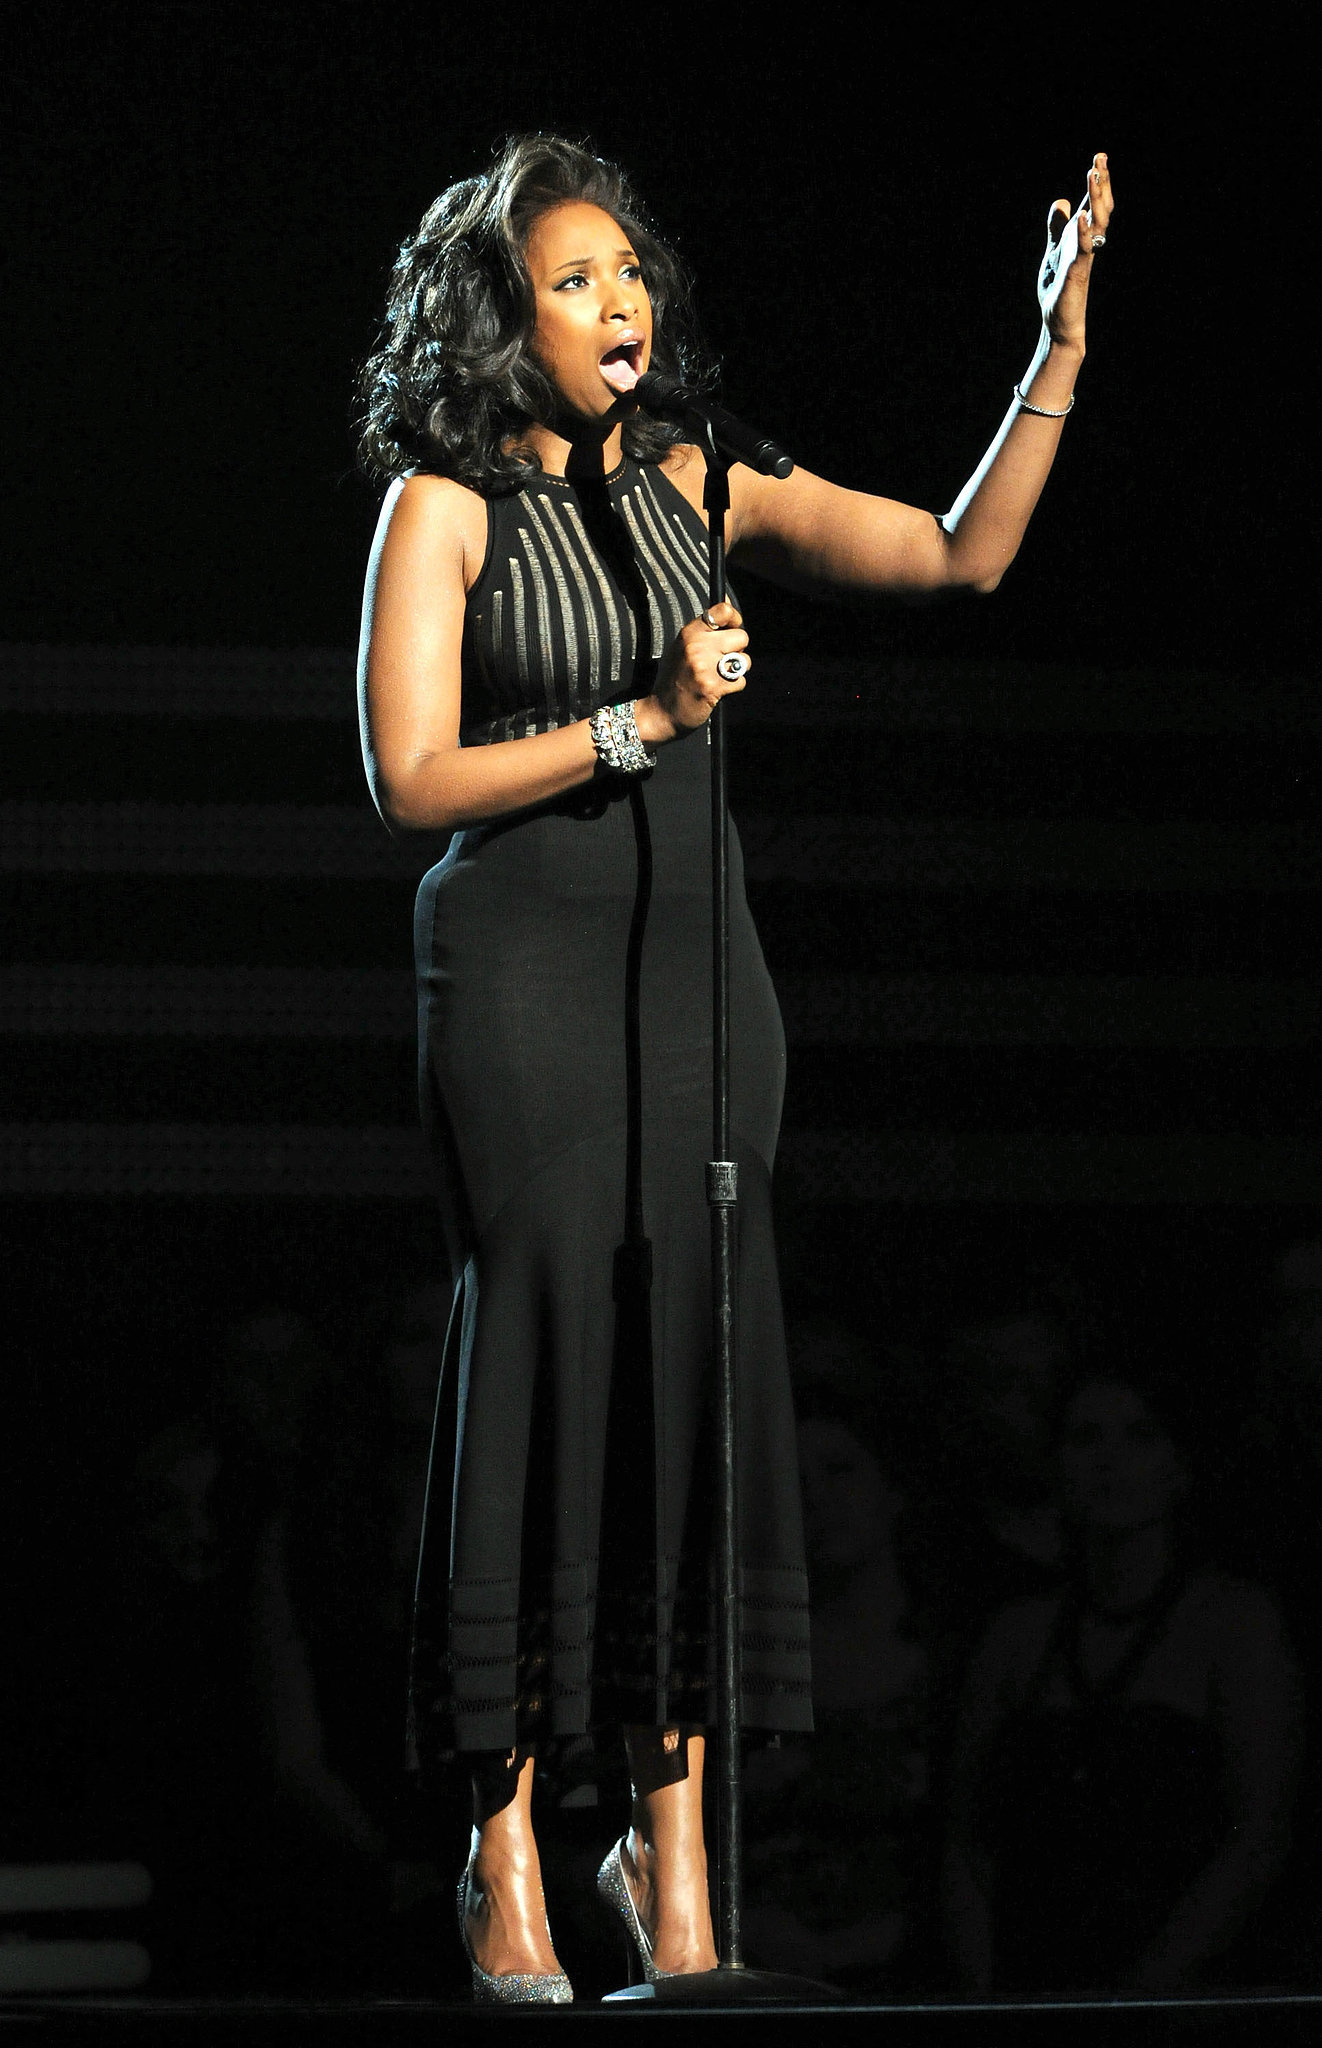 Jennifer Hudson performed an emotional tribute to Whitney Houston during the 2012 show.